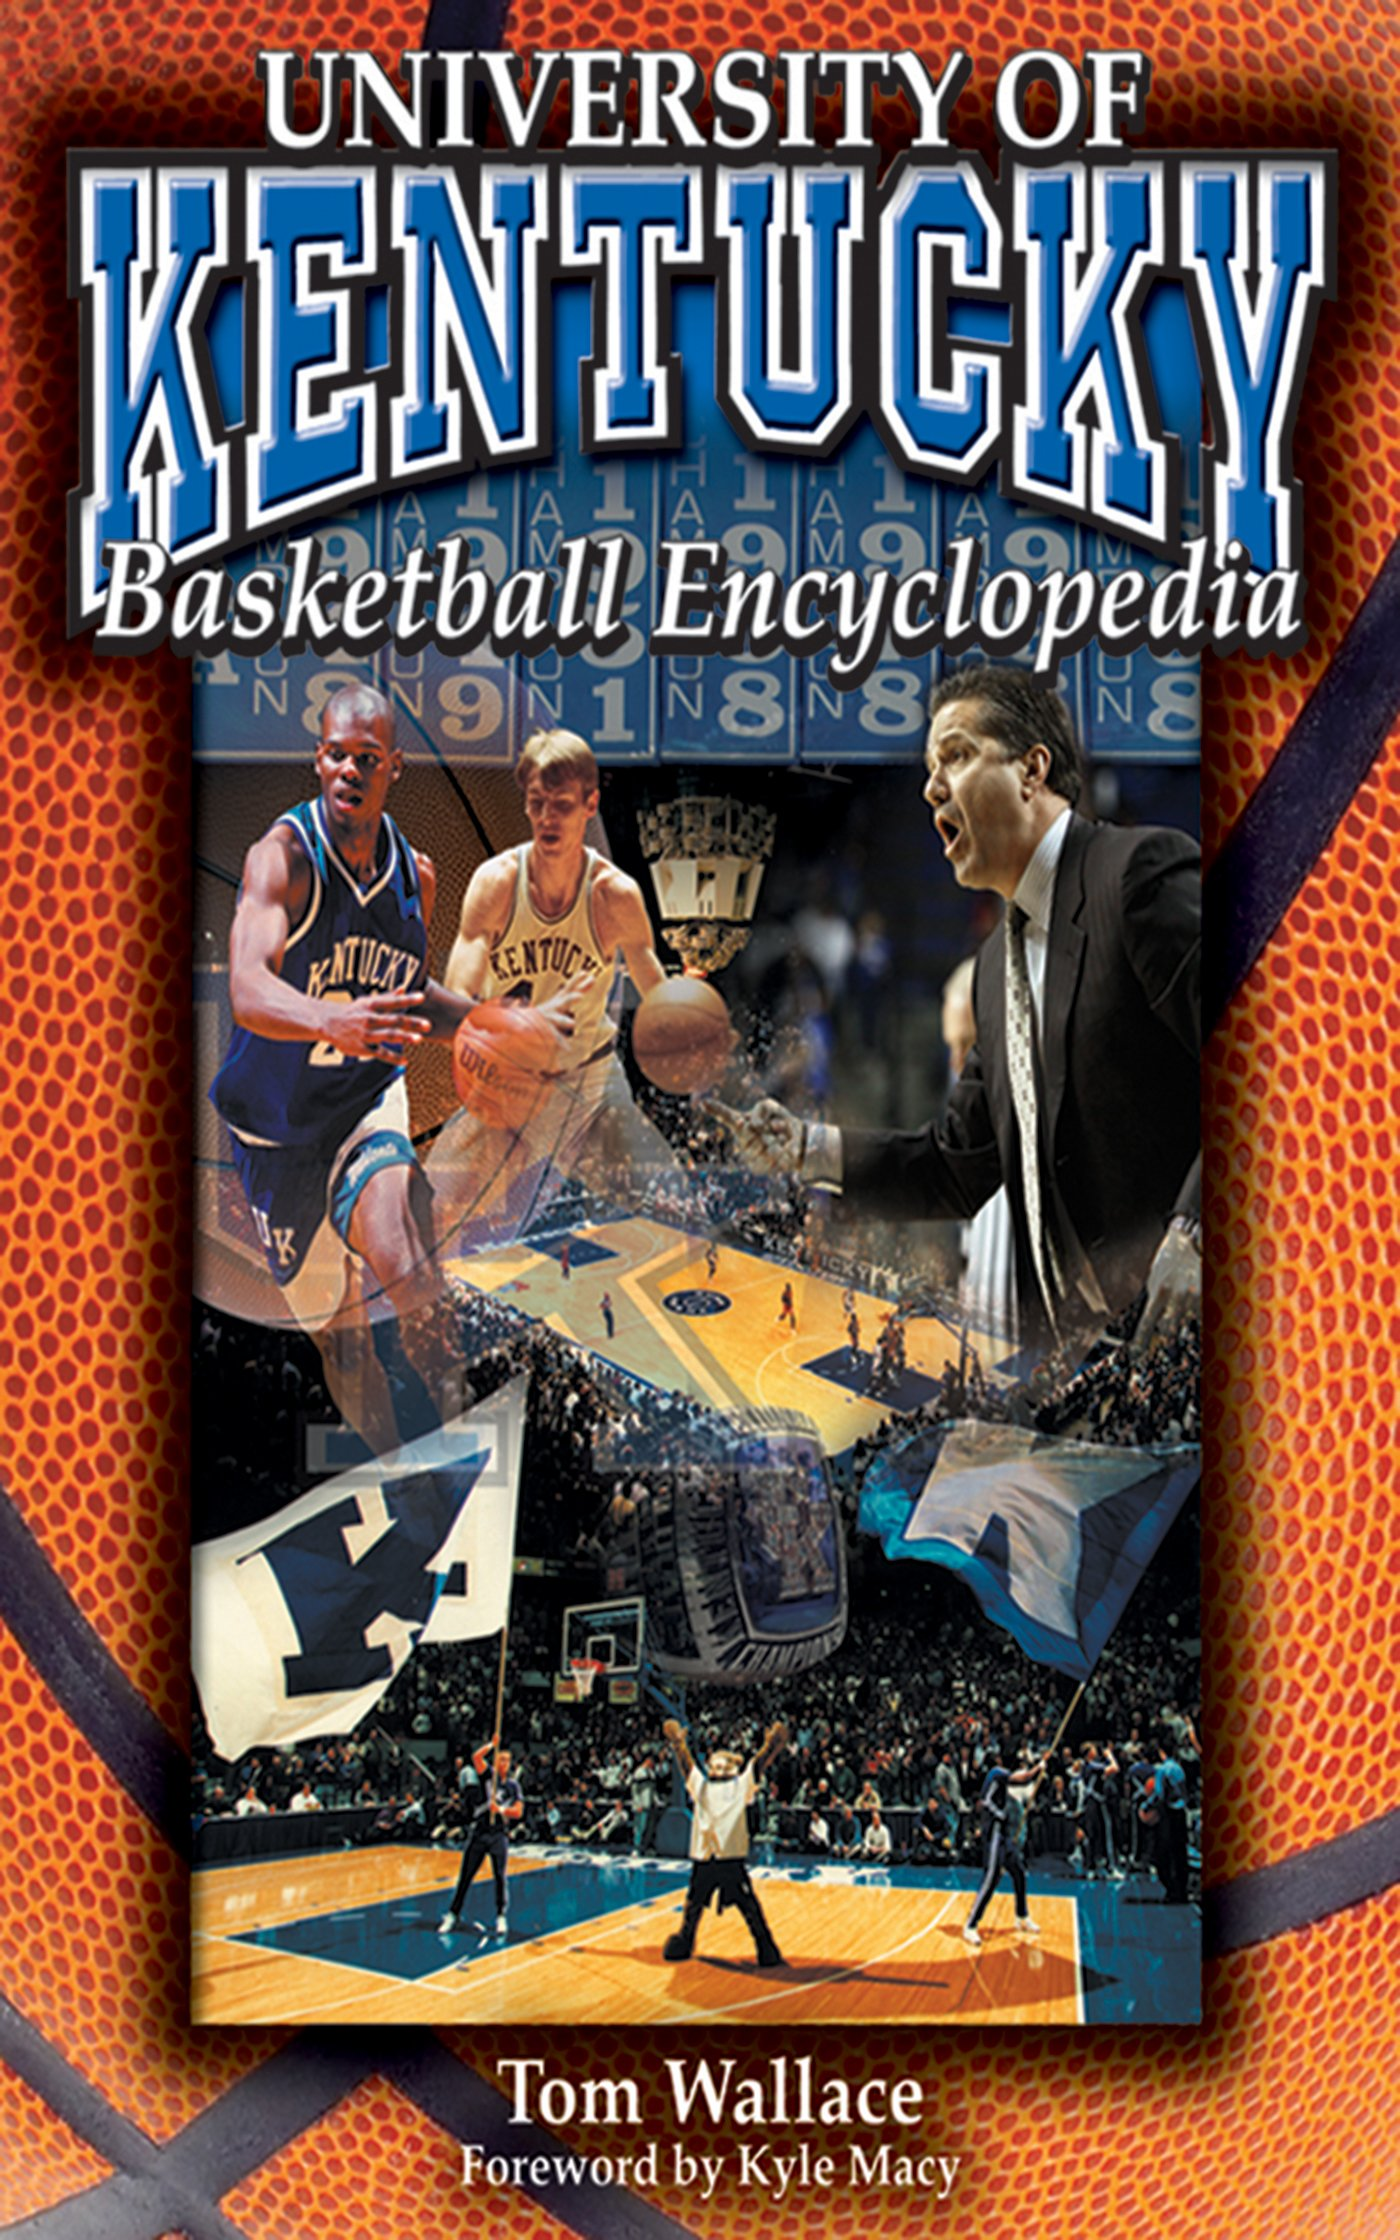 The University of Kentucky Basketball Encyclopedia pdf